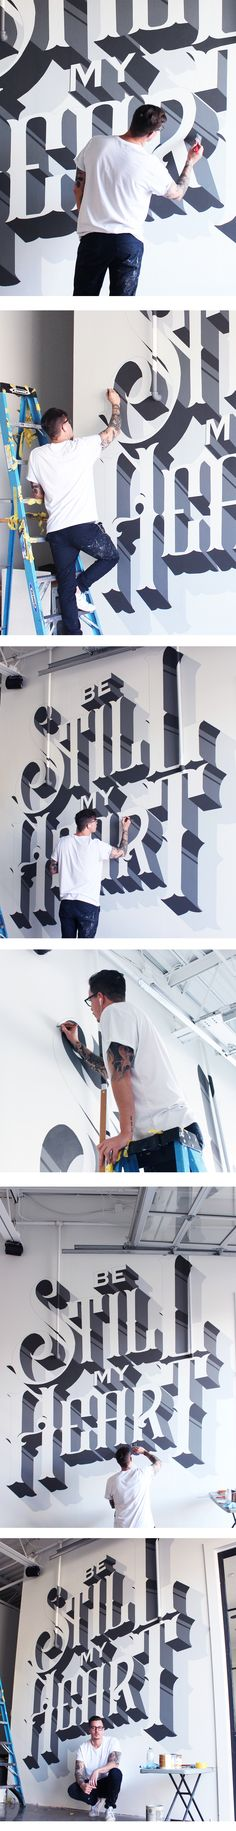 Custom typographic mural designed and painted for Yongehurst Distillery in Toronto